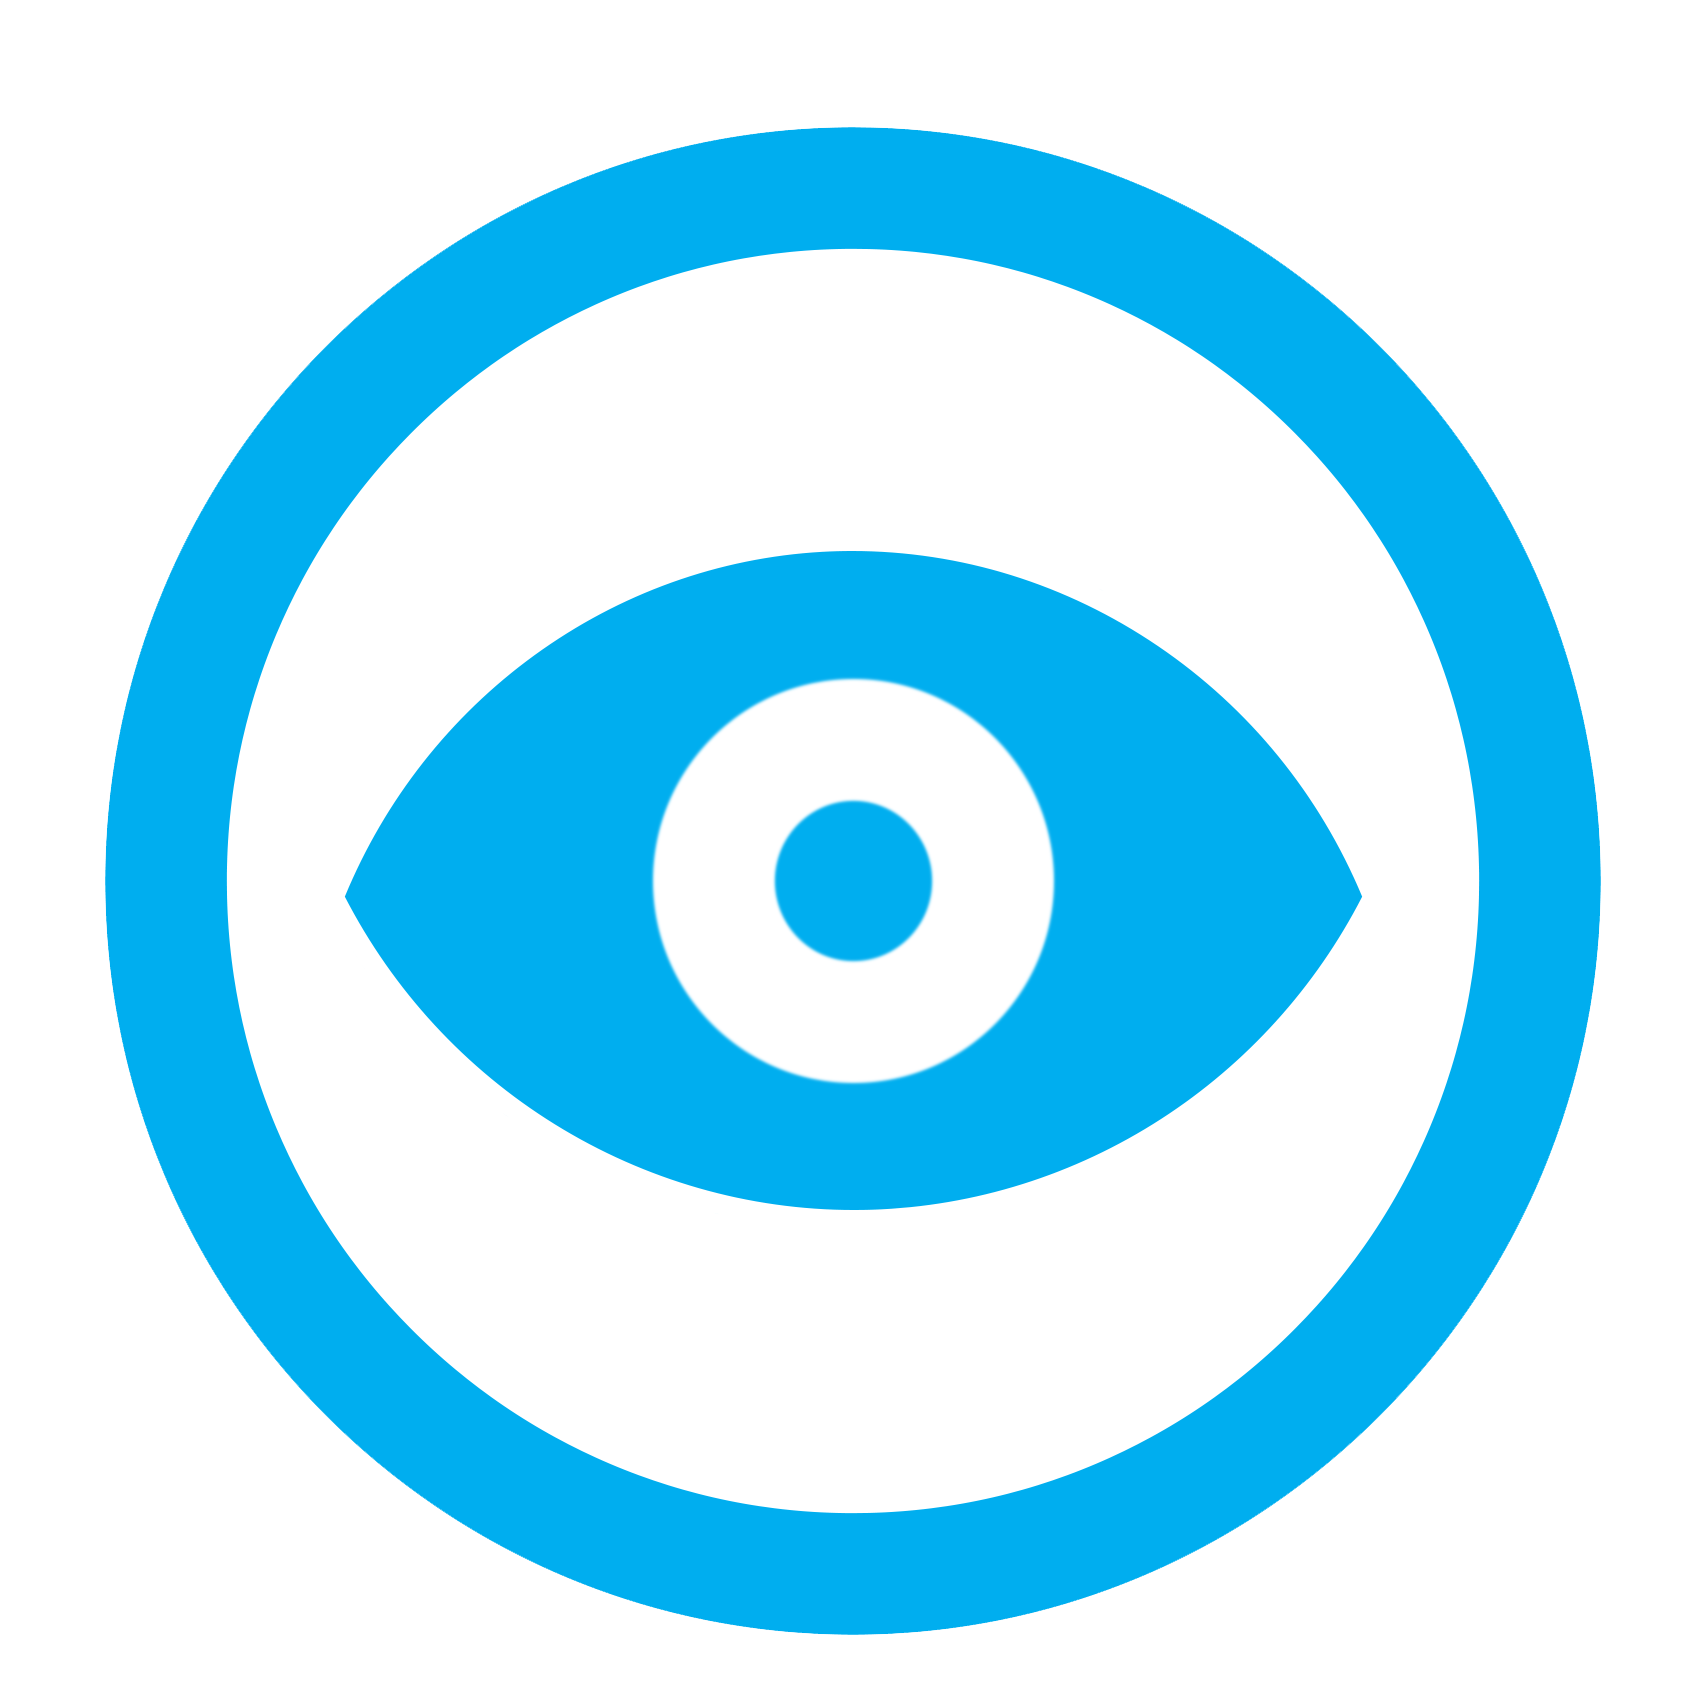 foresight eye logo